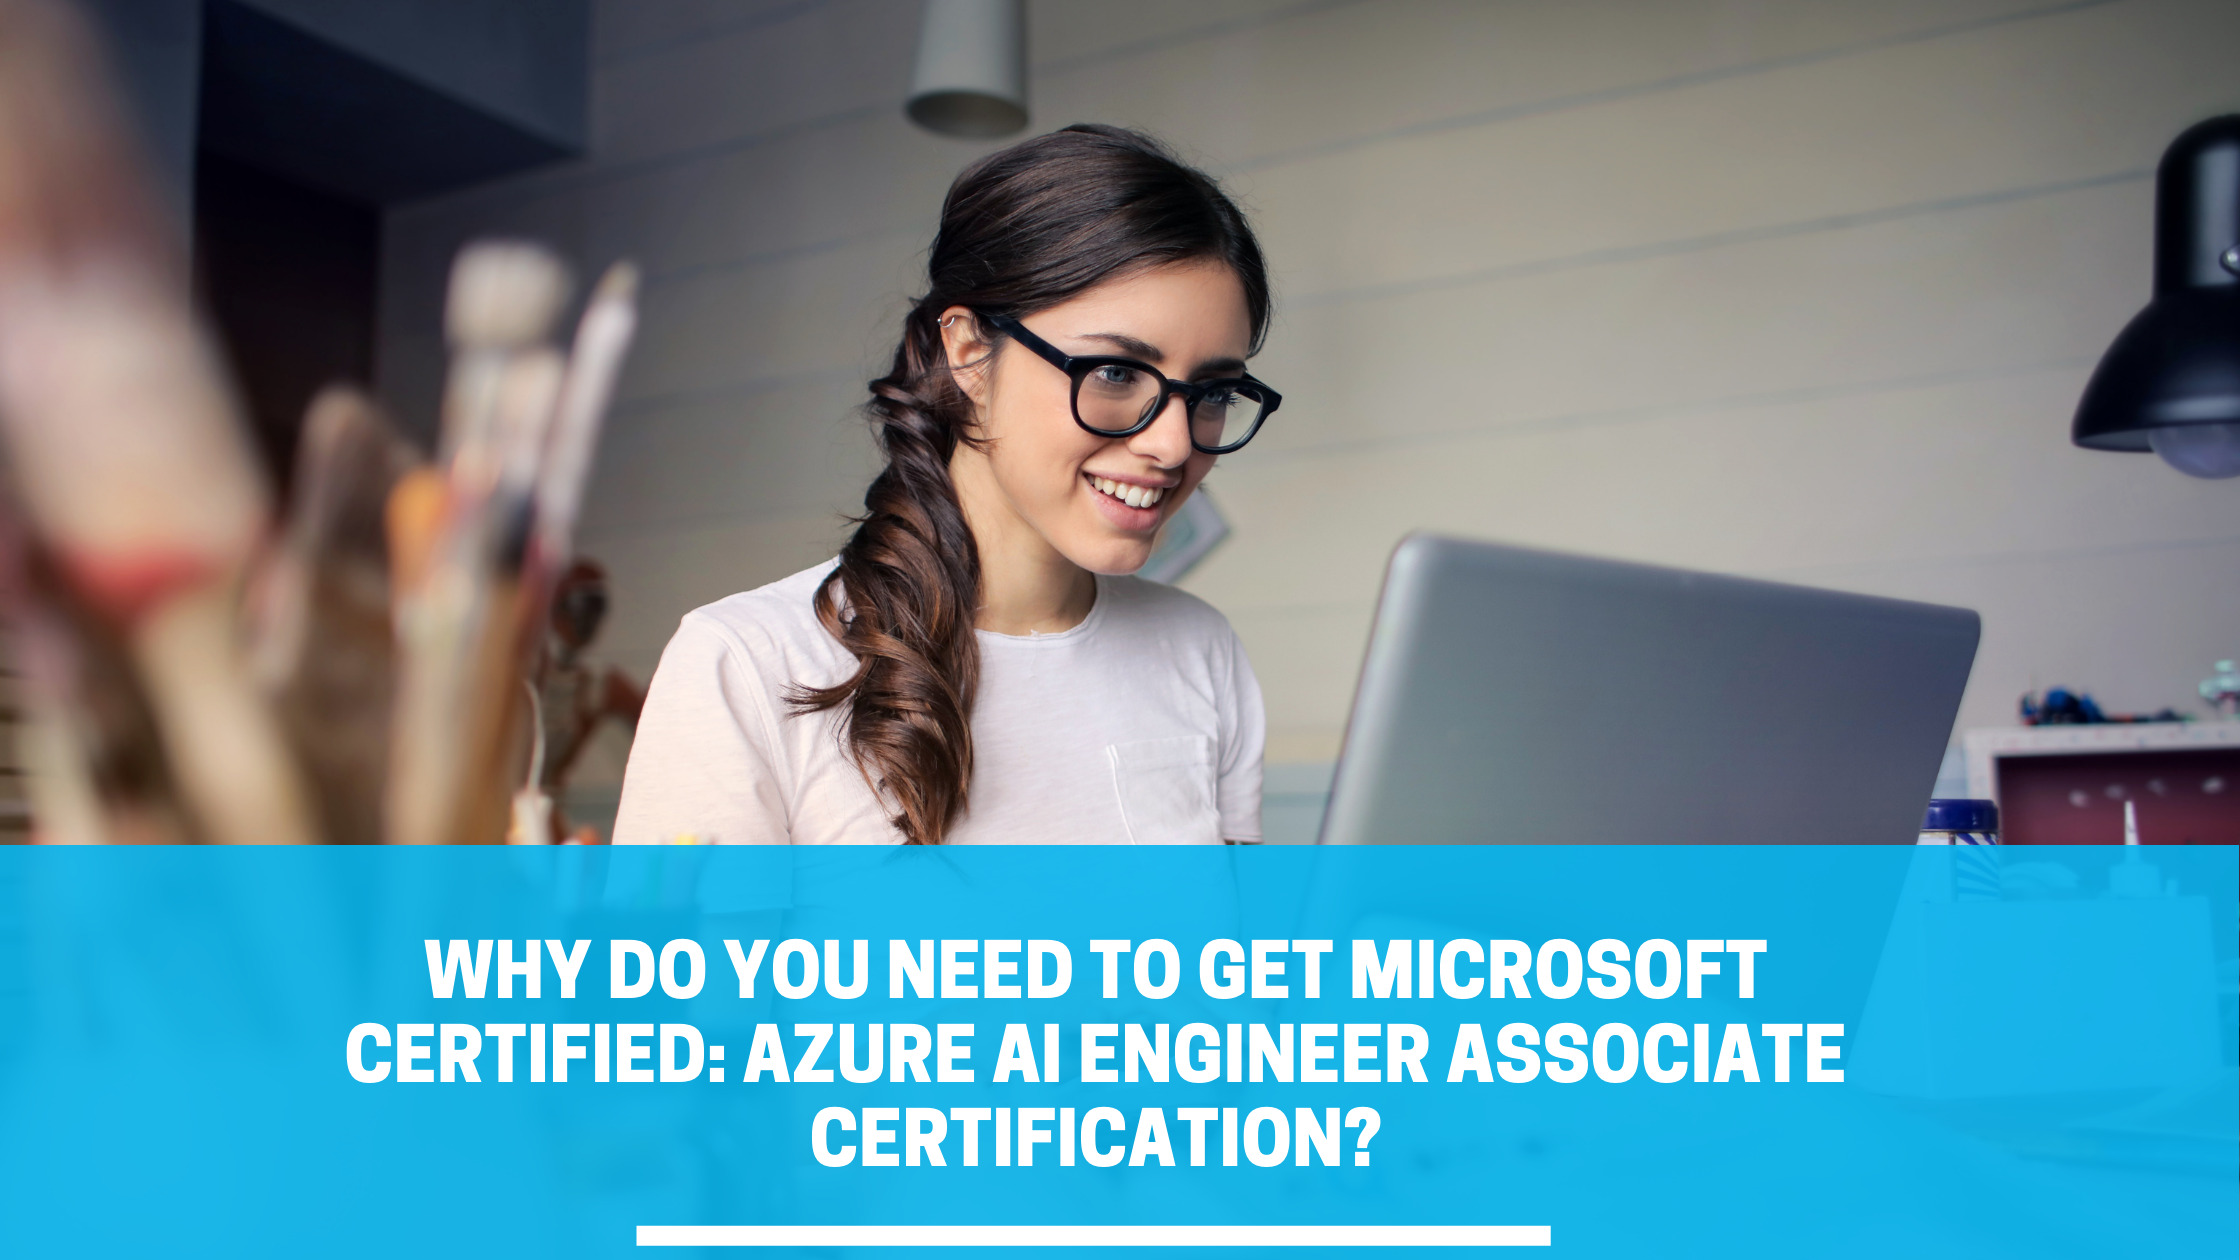 img-why-do-you-need-to-get-microsoft-certified-azure-ai-engineer-associate-certification.jpg